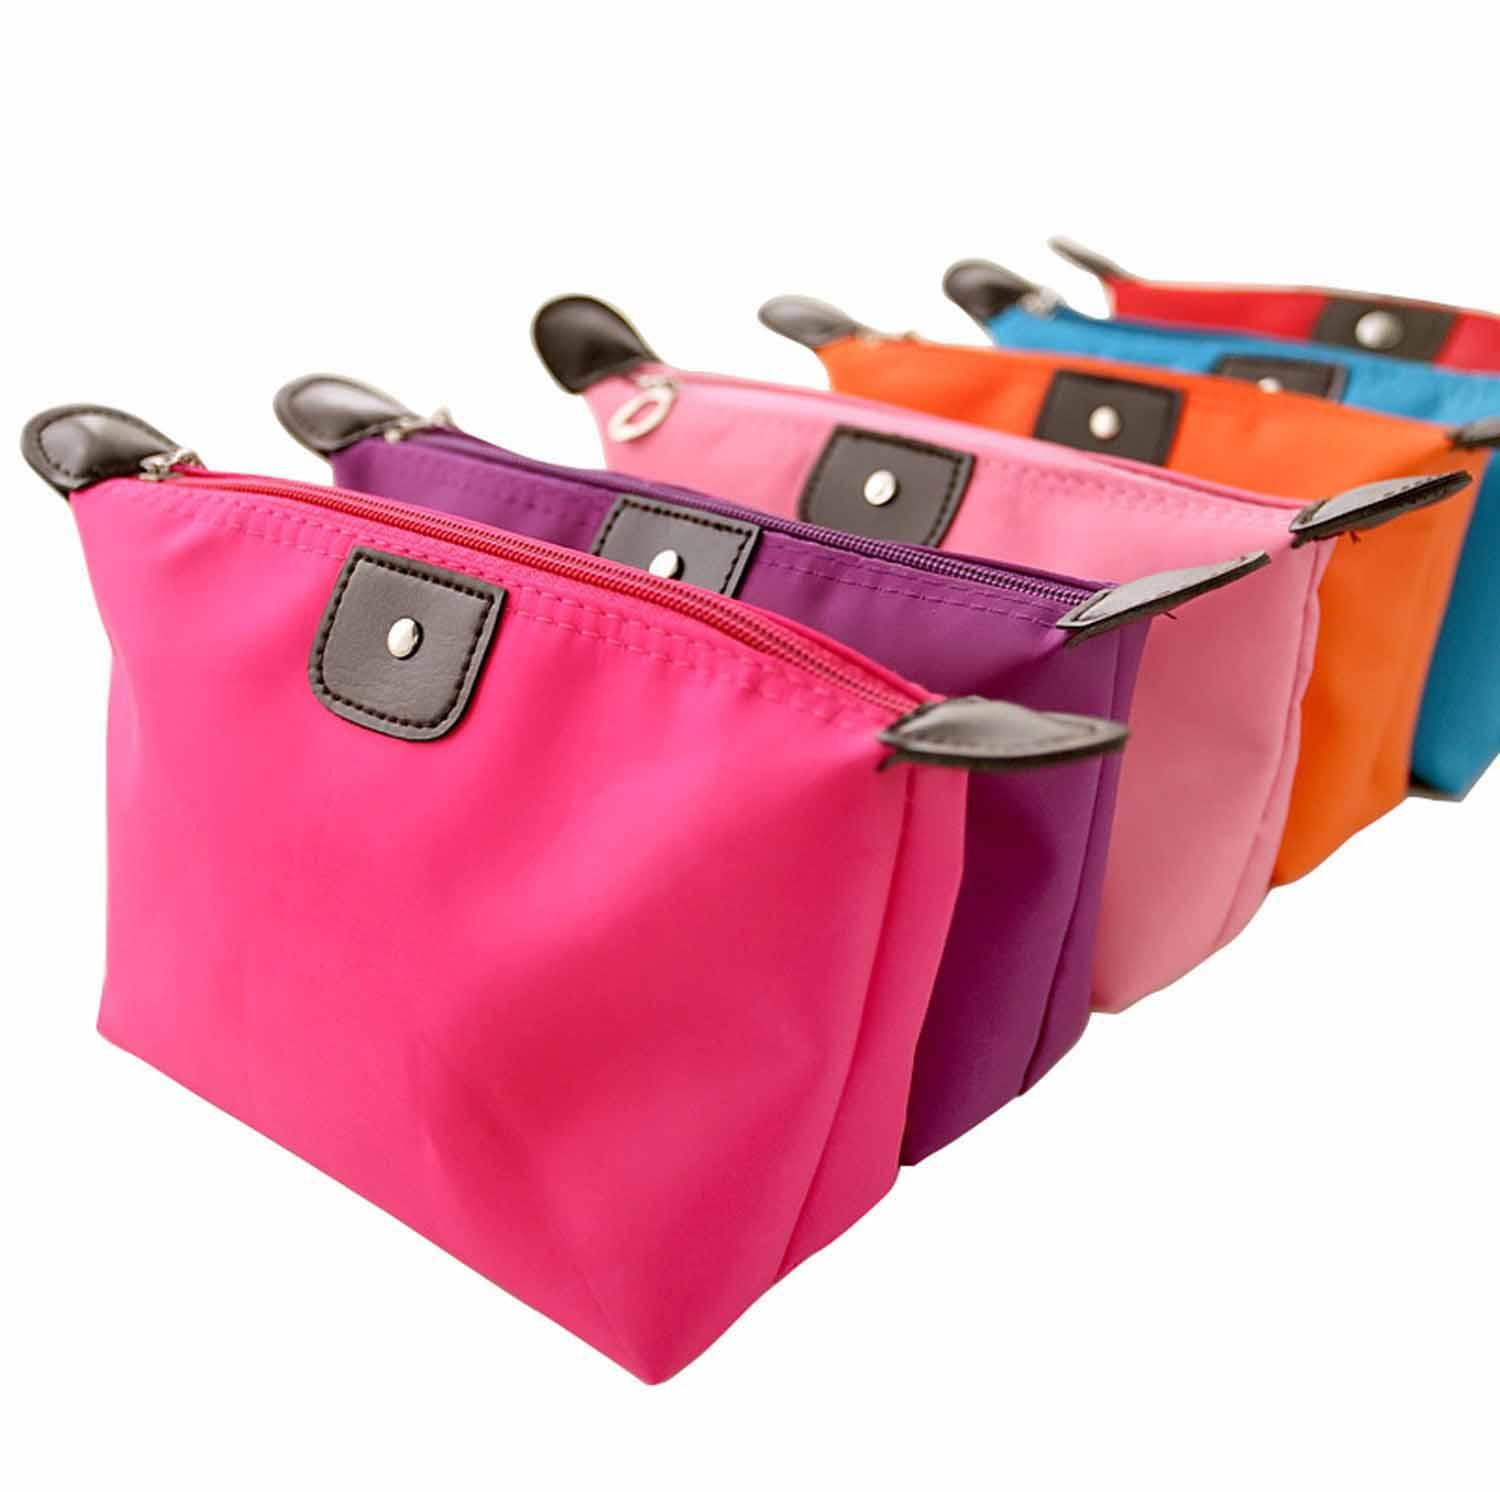 Multifunction Makeup Pouch WaterProof Organizer Pouch Philippines